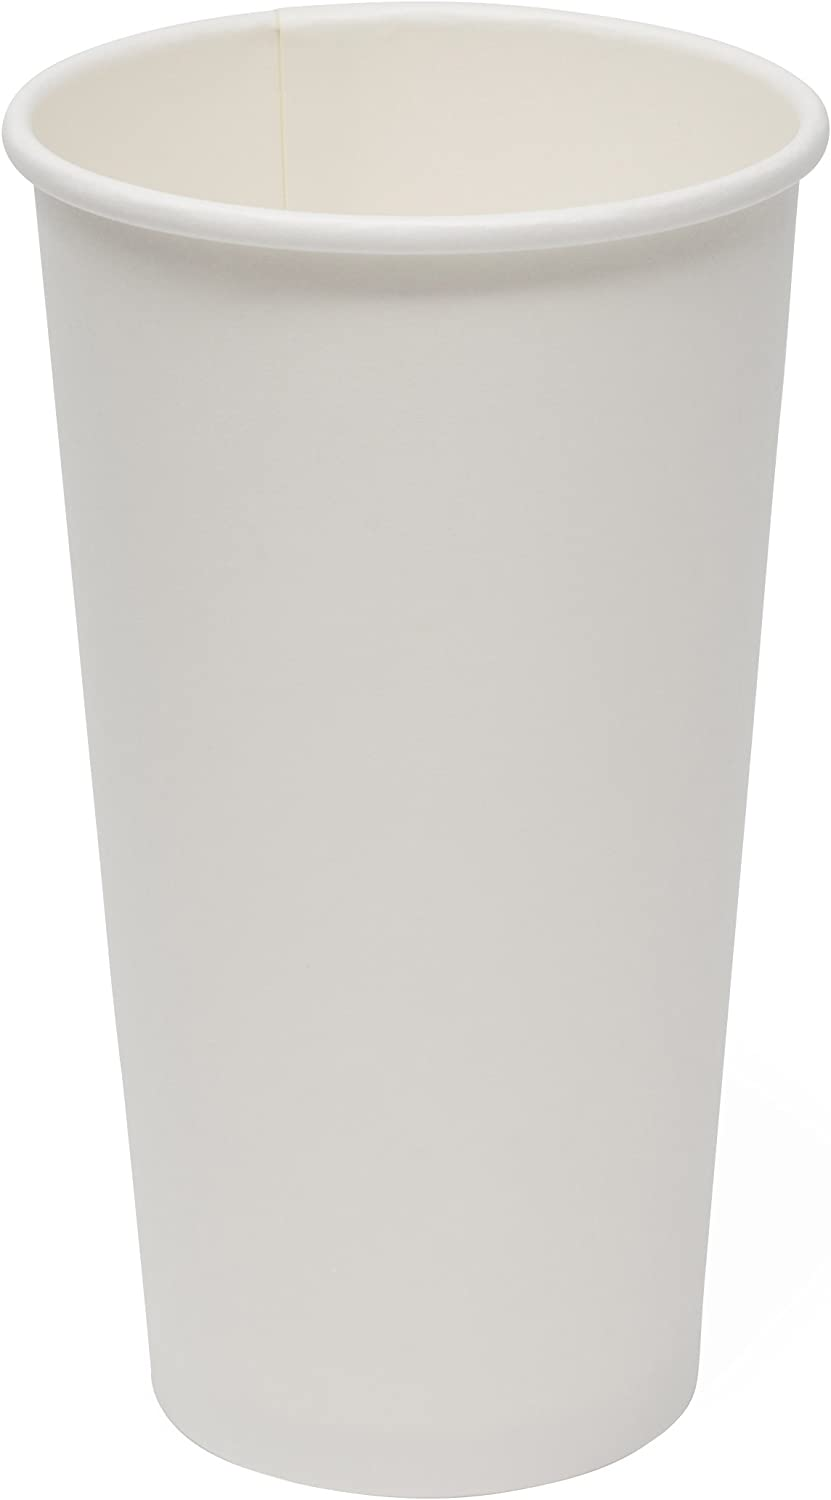 Simply Deliver 20 oz Paper Hot Cup, Single-Wall, Poly-Coated, White, 1000-Count